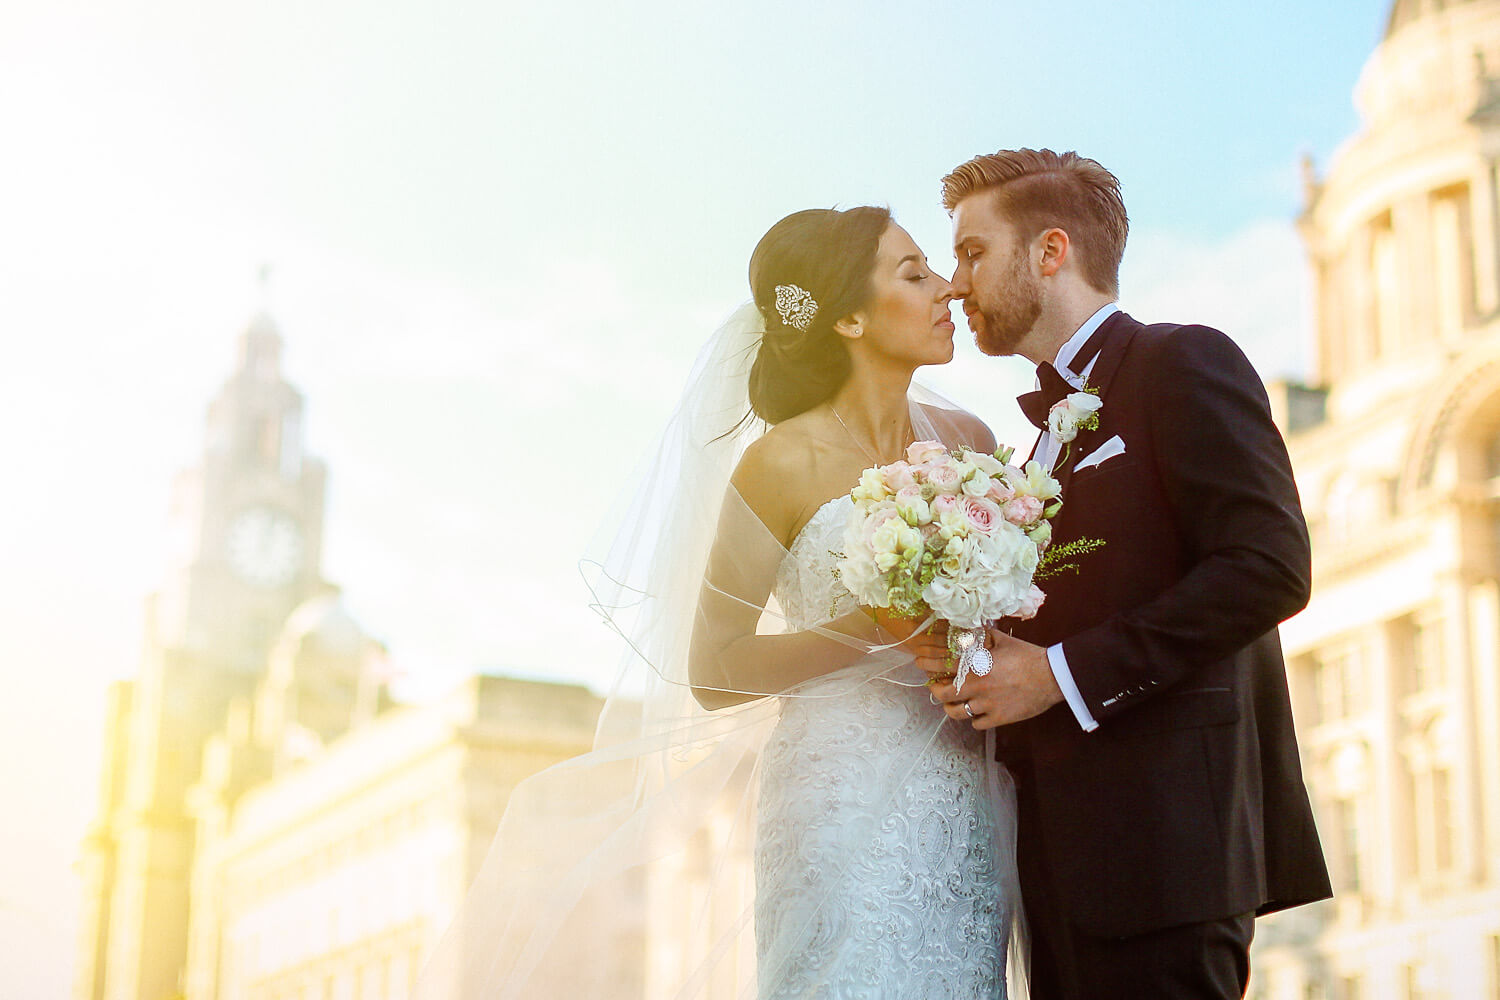 Cool portrait of bride and groom in front of Liver Building 30 James Street Liverpool wedding photography